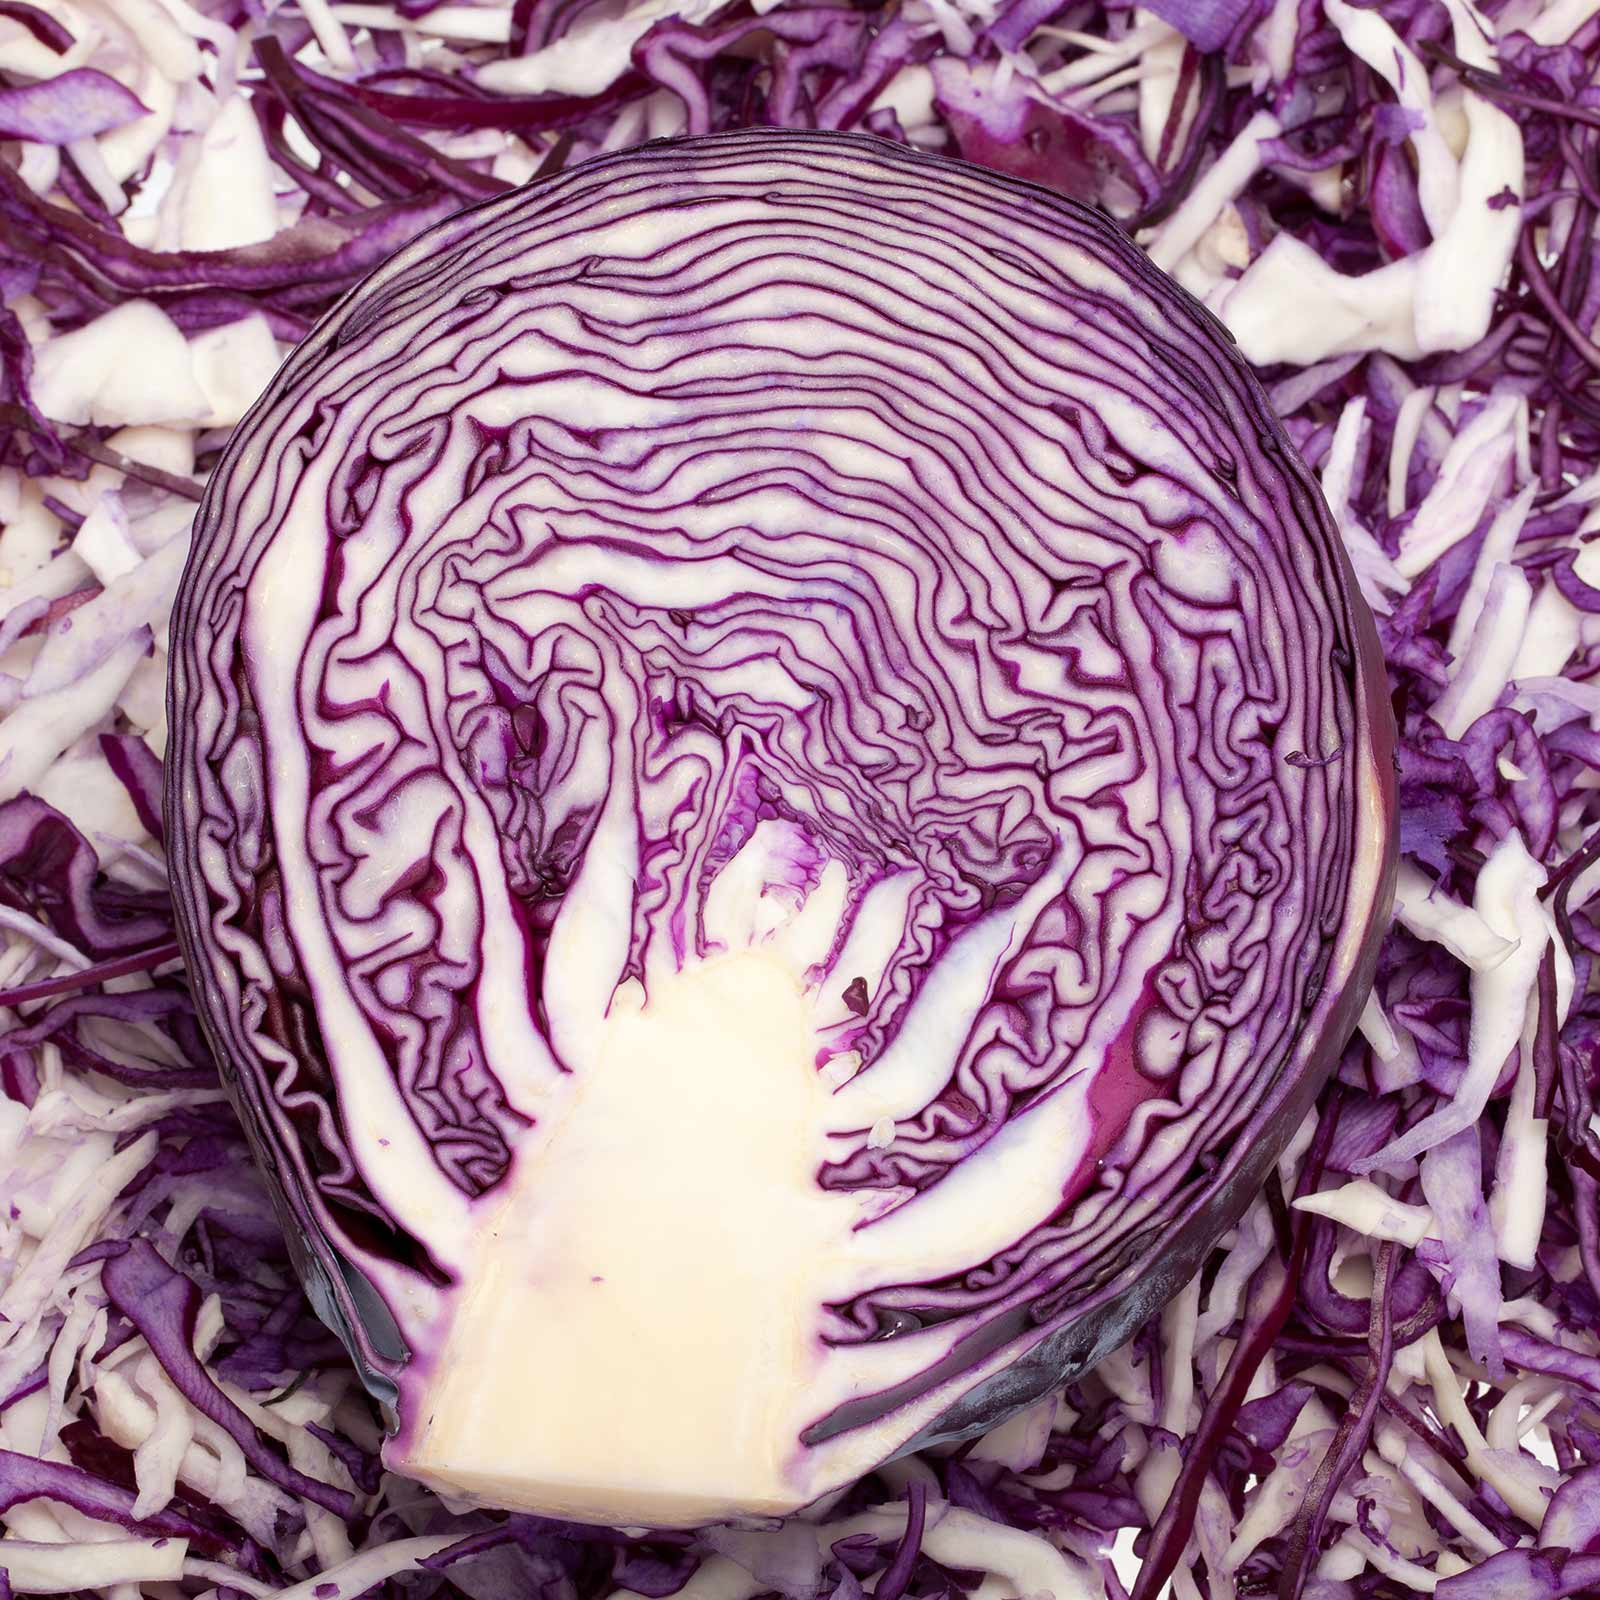 Red Rock Mammoth Cabbage Seeds: 4 Oz Non-GMO, Chemical Free Sprouting Seeds for Vegetable Gardening & Growing Microgreens by Mountain Valley Seed Company